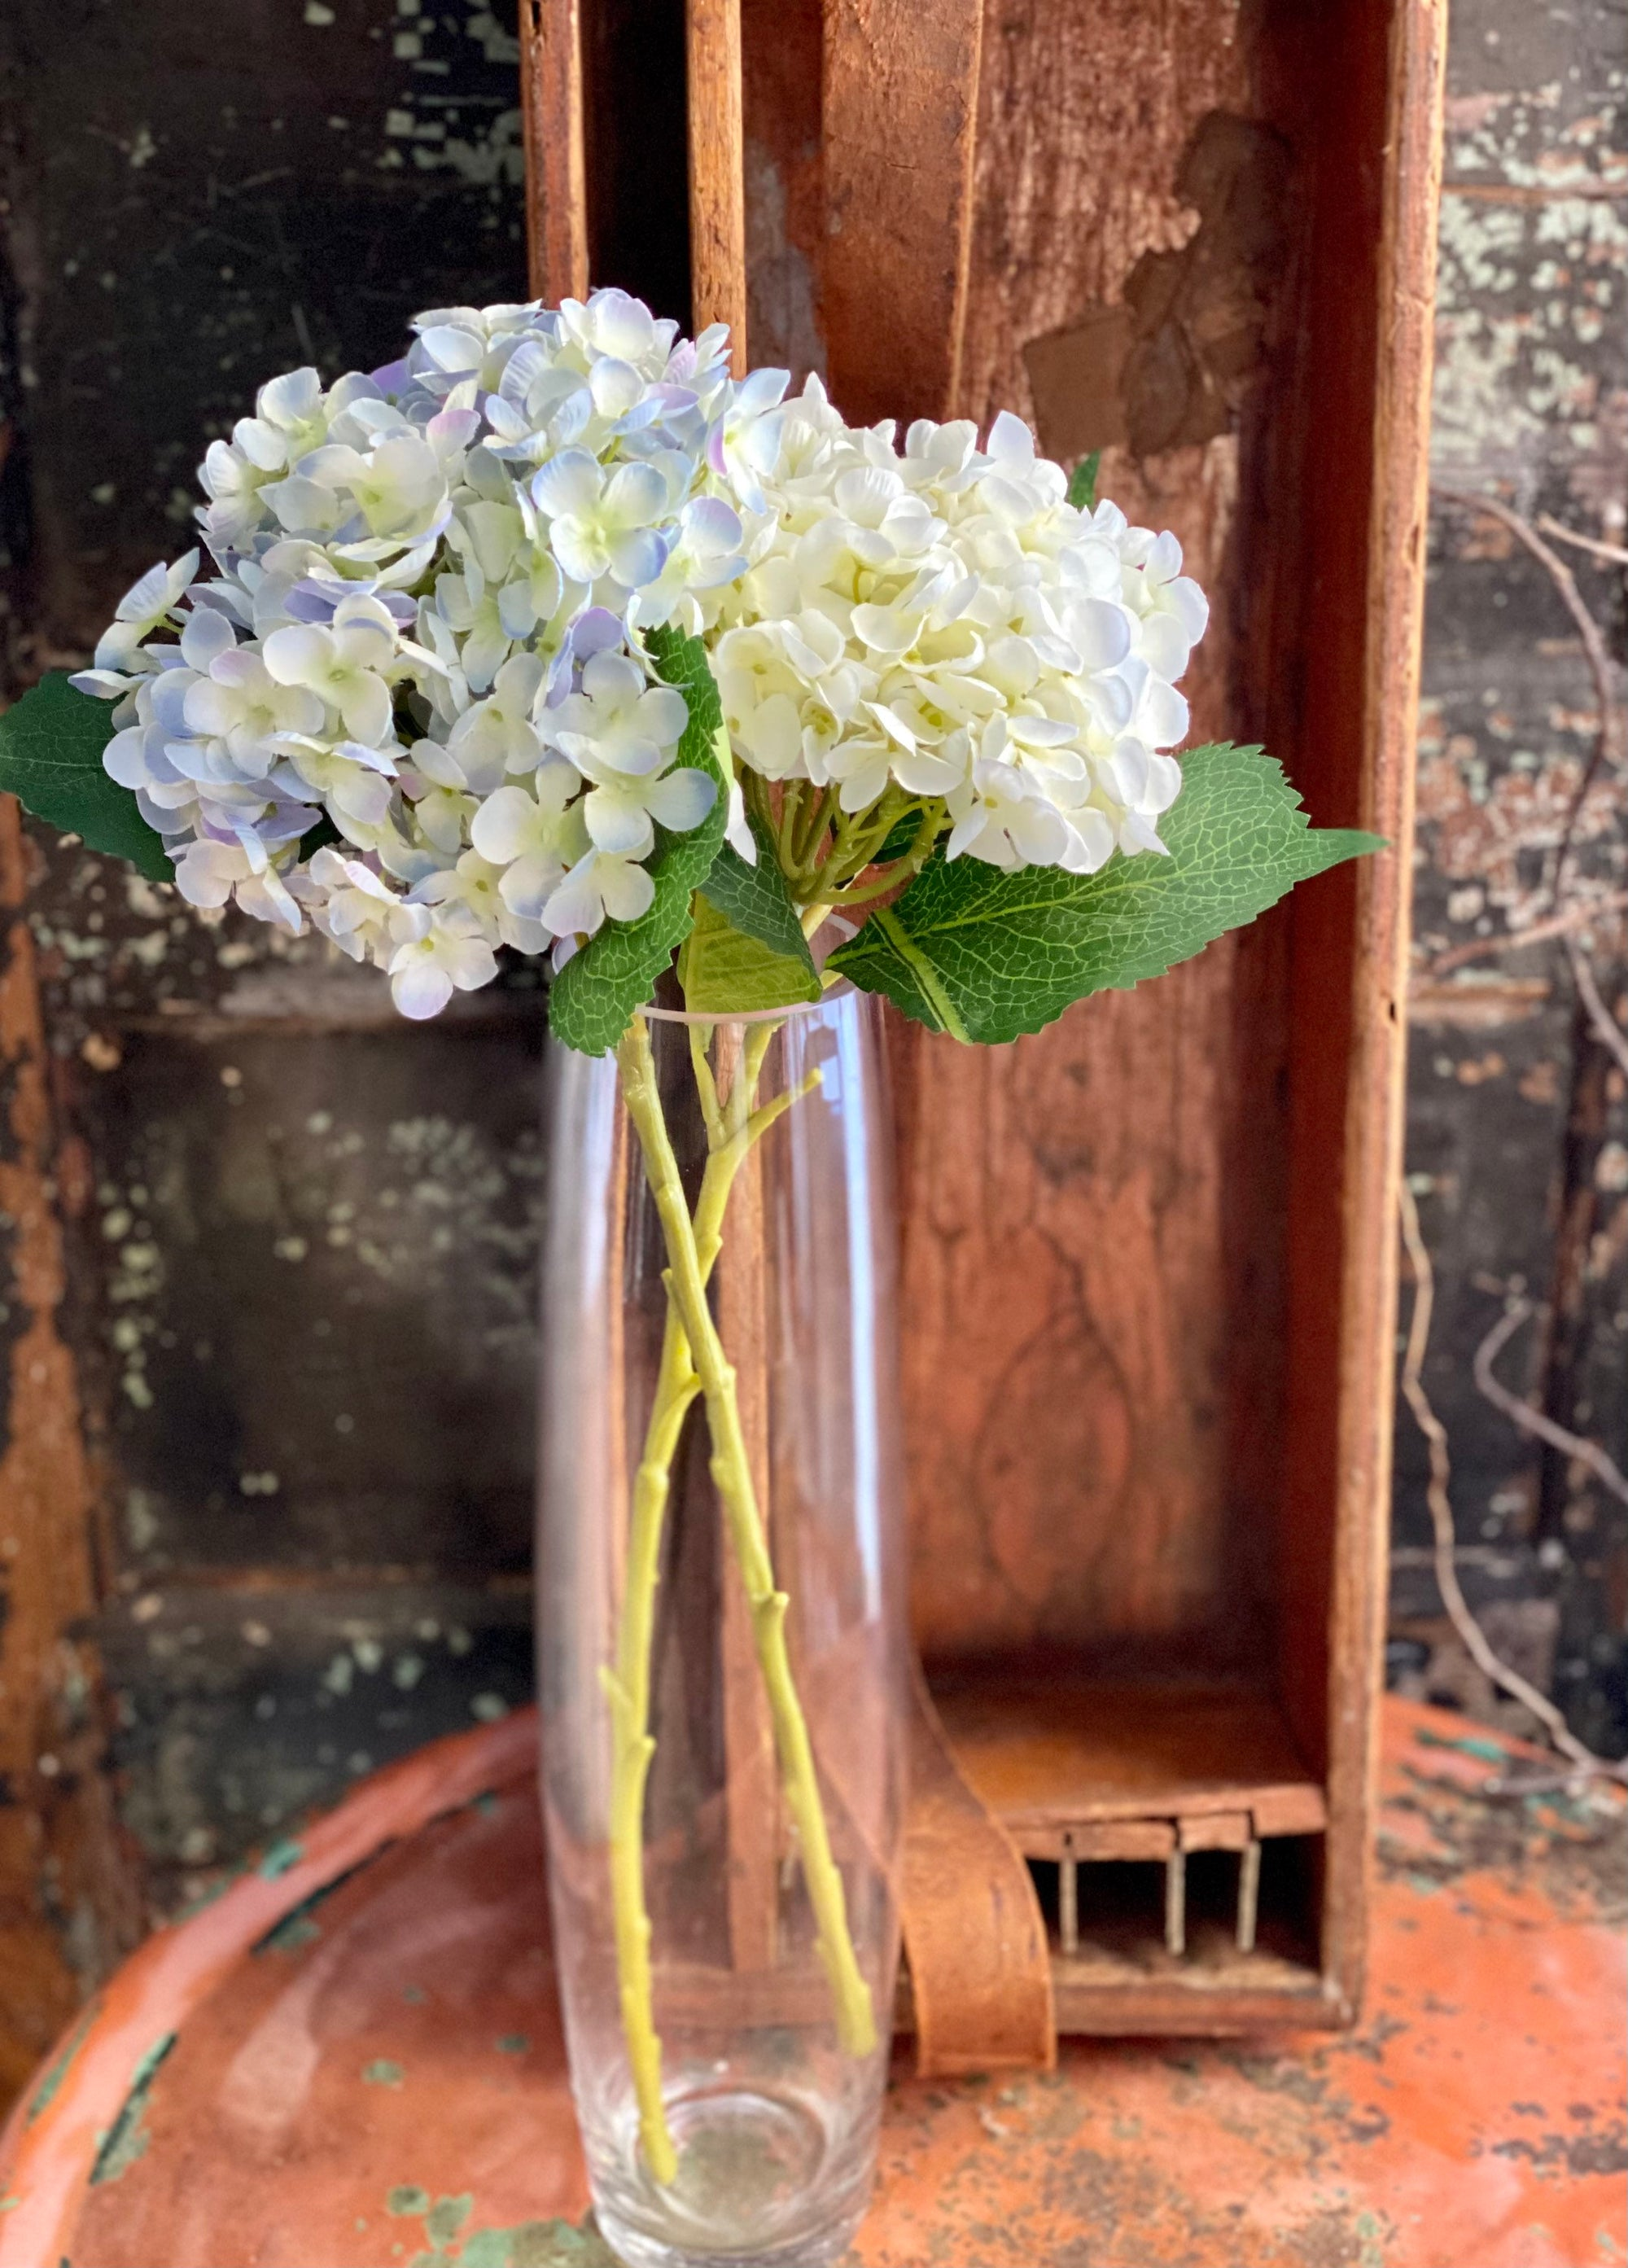 Artificial Large Hydrangea Stem, White or blue hydrangea, Silk flower stem, floral craft supply, wedding flower, wreath making supply